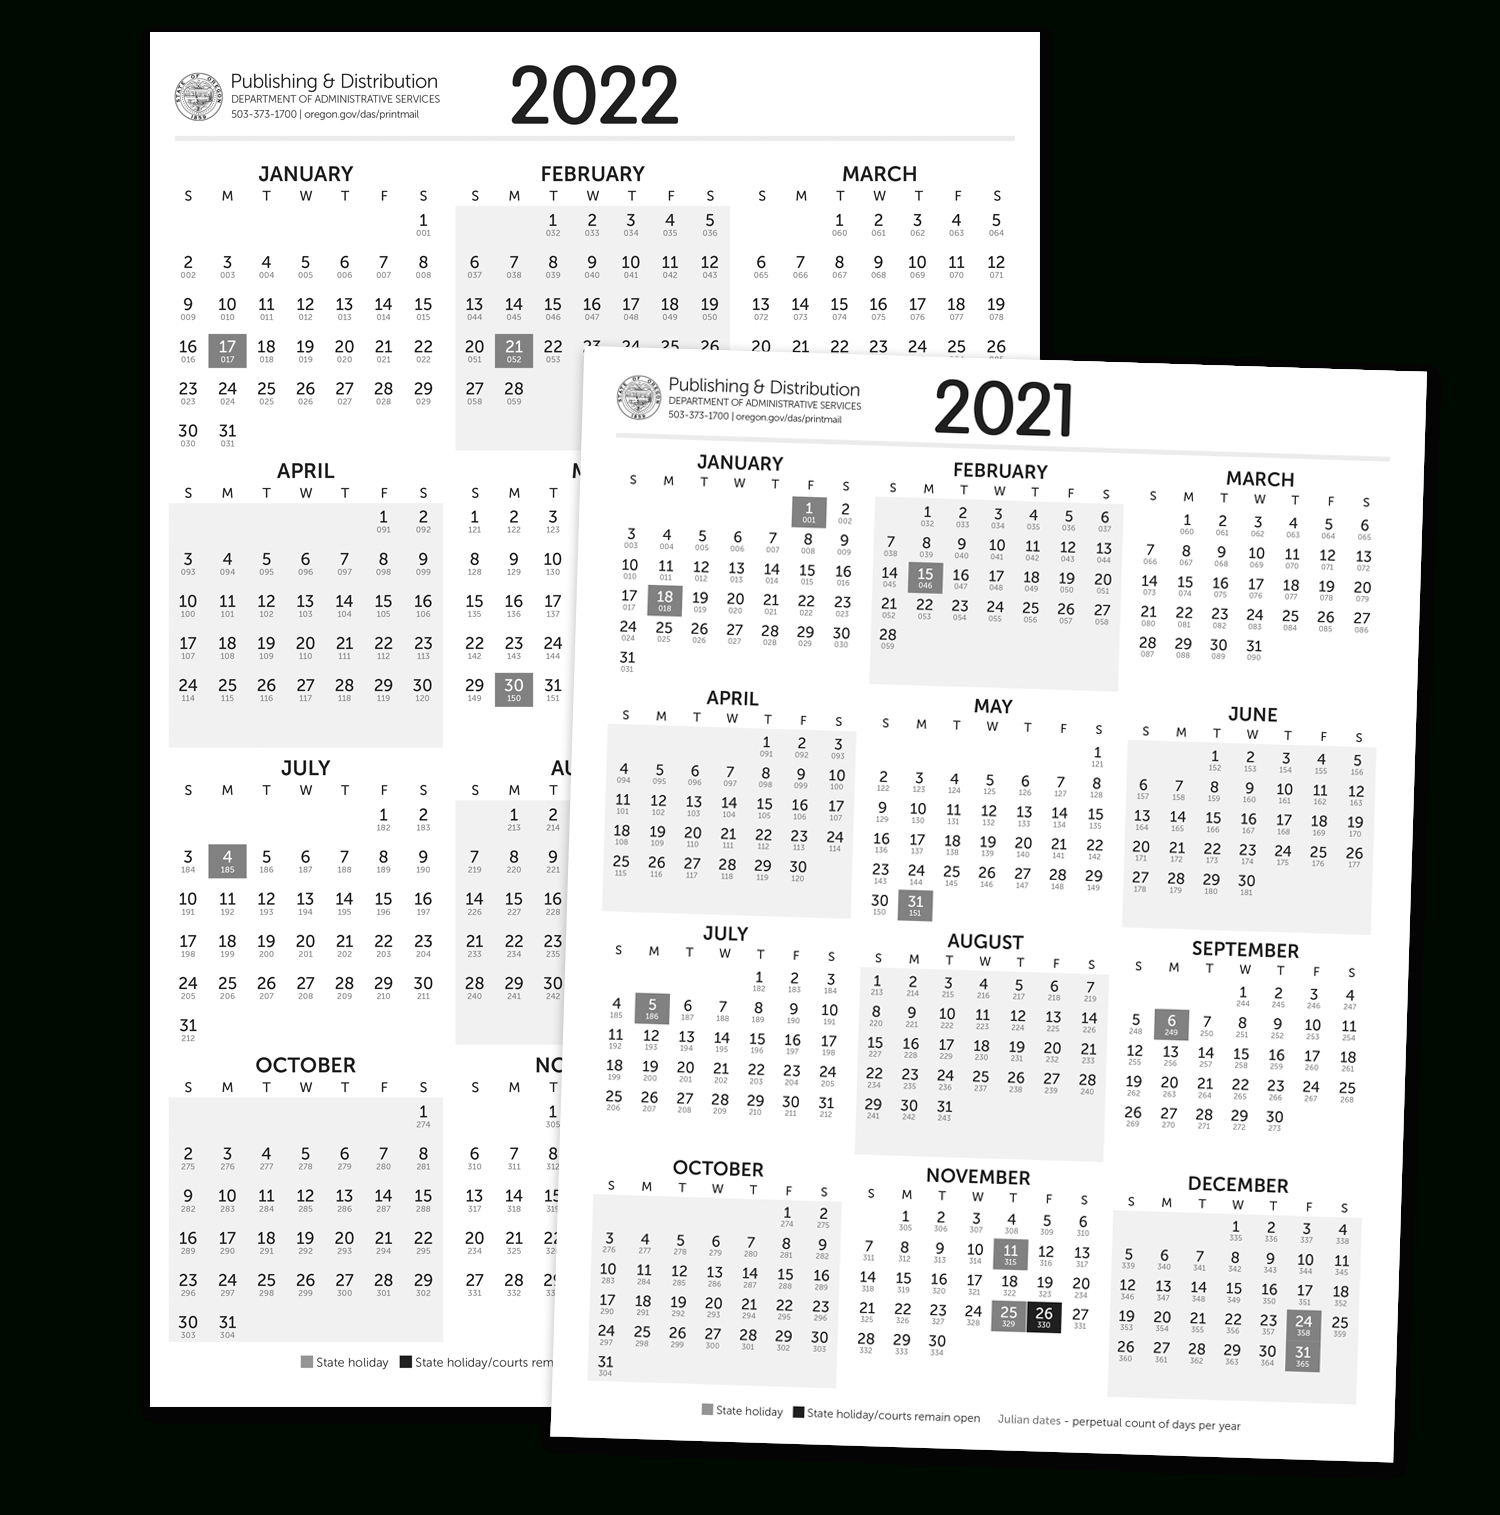 State Of Oregon: Printing, Mailing And Distribution in Julian Date Calendar For 2022